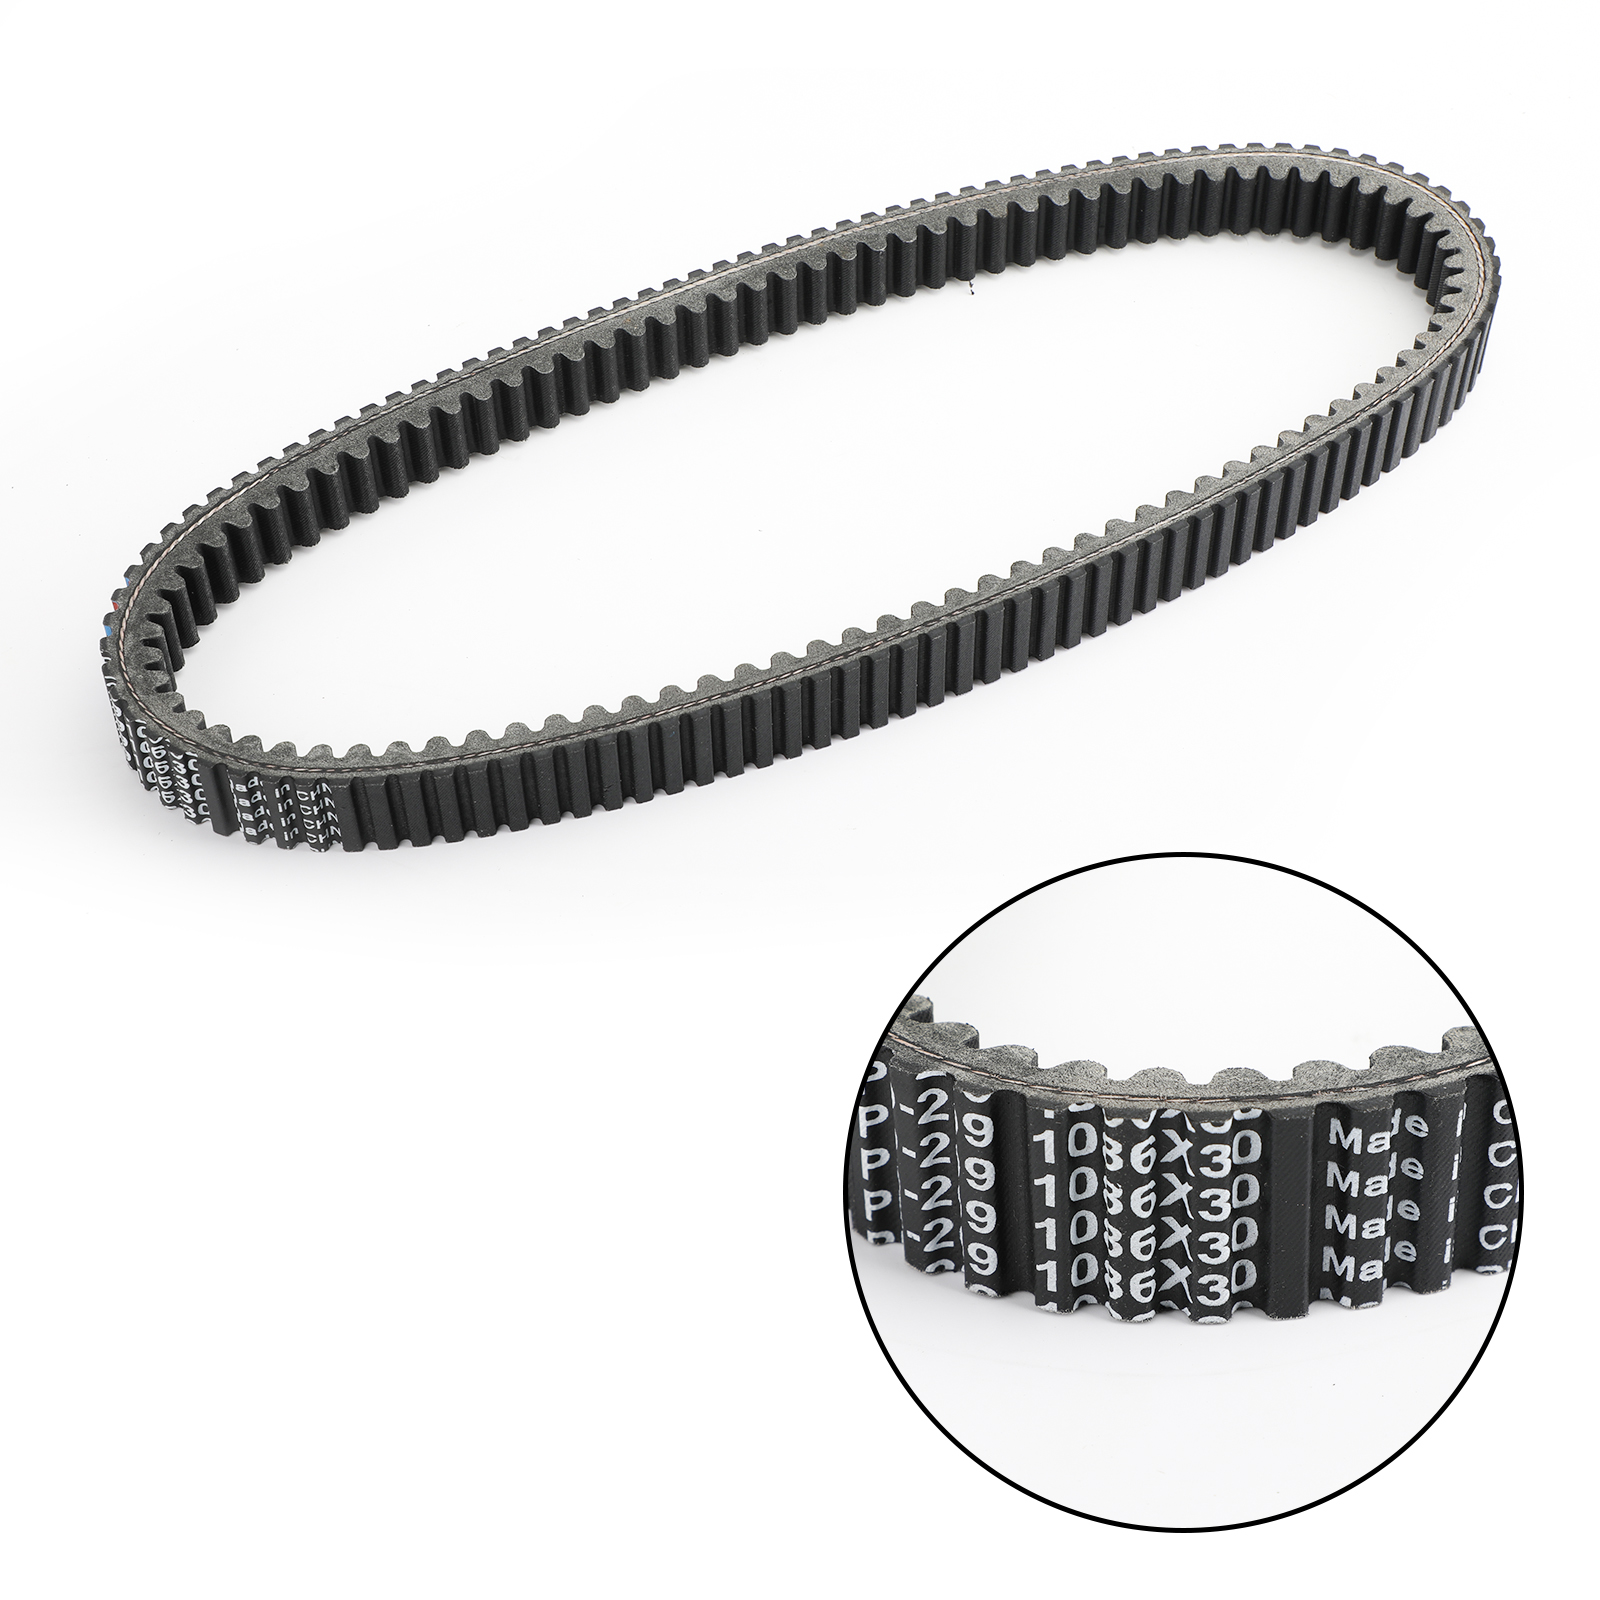 Areyourshop For Argo 700 750 HD Avenger Conquest Outfitter XTI 8x8 Drive Belt Transmission Belt Motorcycle ATV Parts Belts